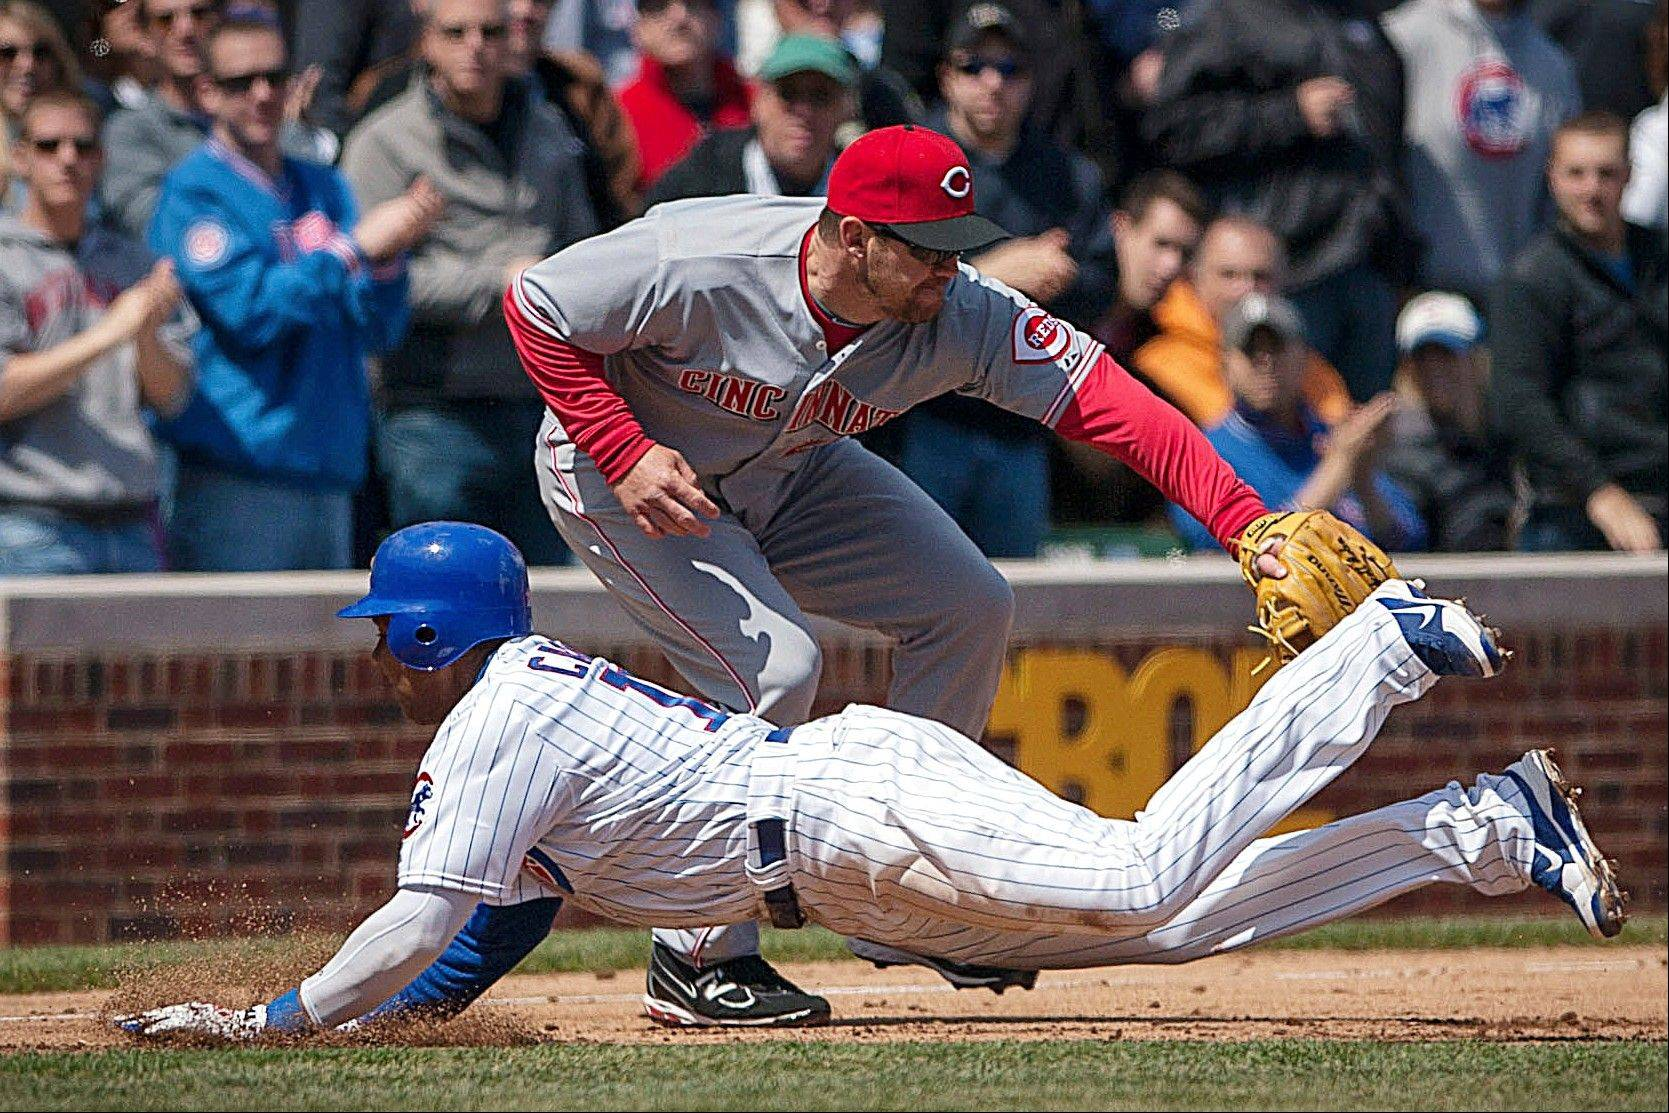 Starlin Castro of the Cubs slides past Cincinnati Reds third baseman Scott Rolen after hitting a triple during the second inning Saturday at Wrigley Field